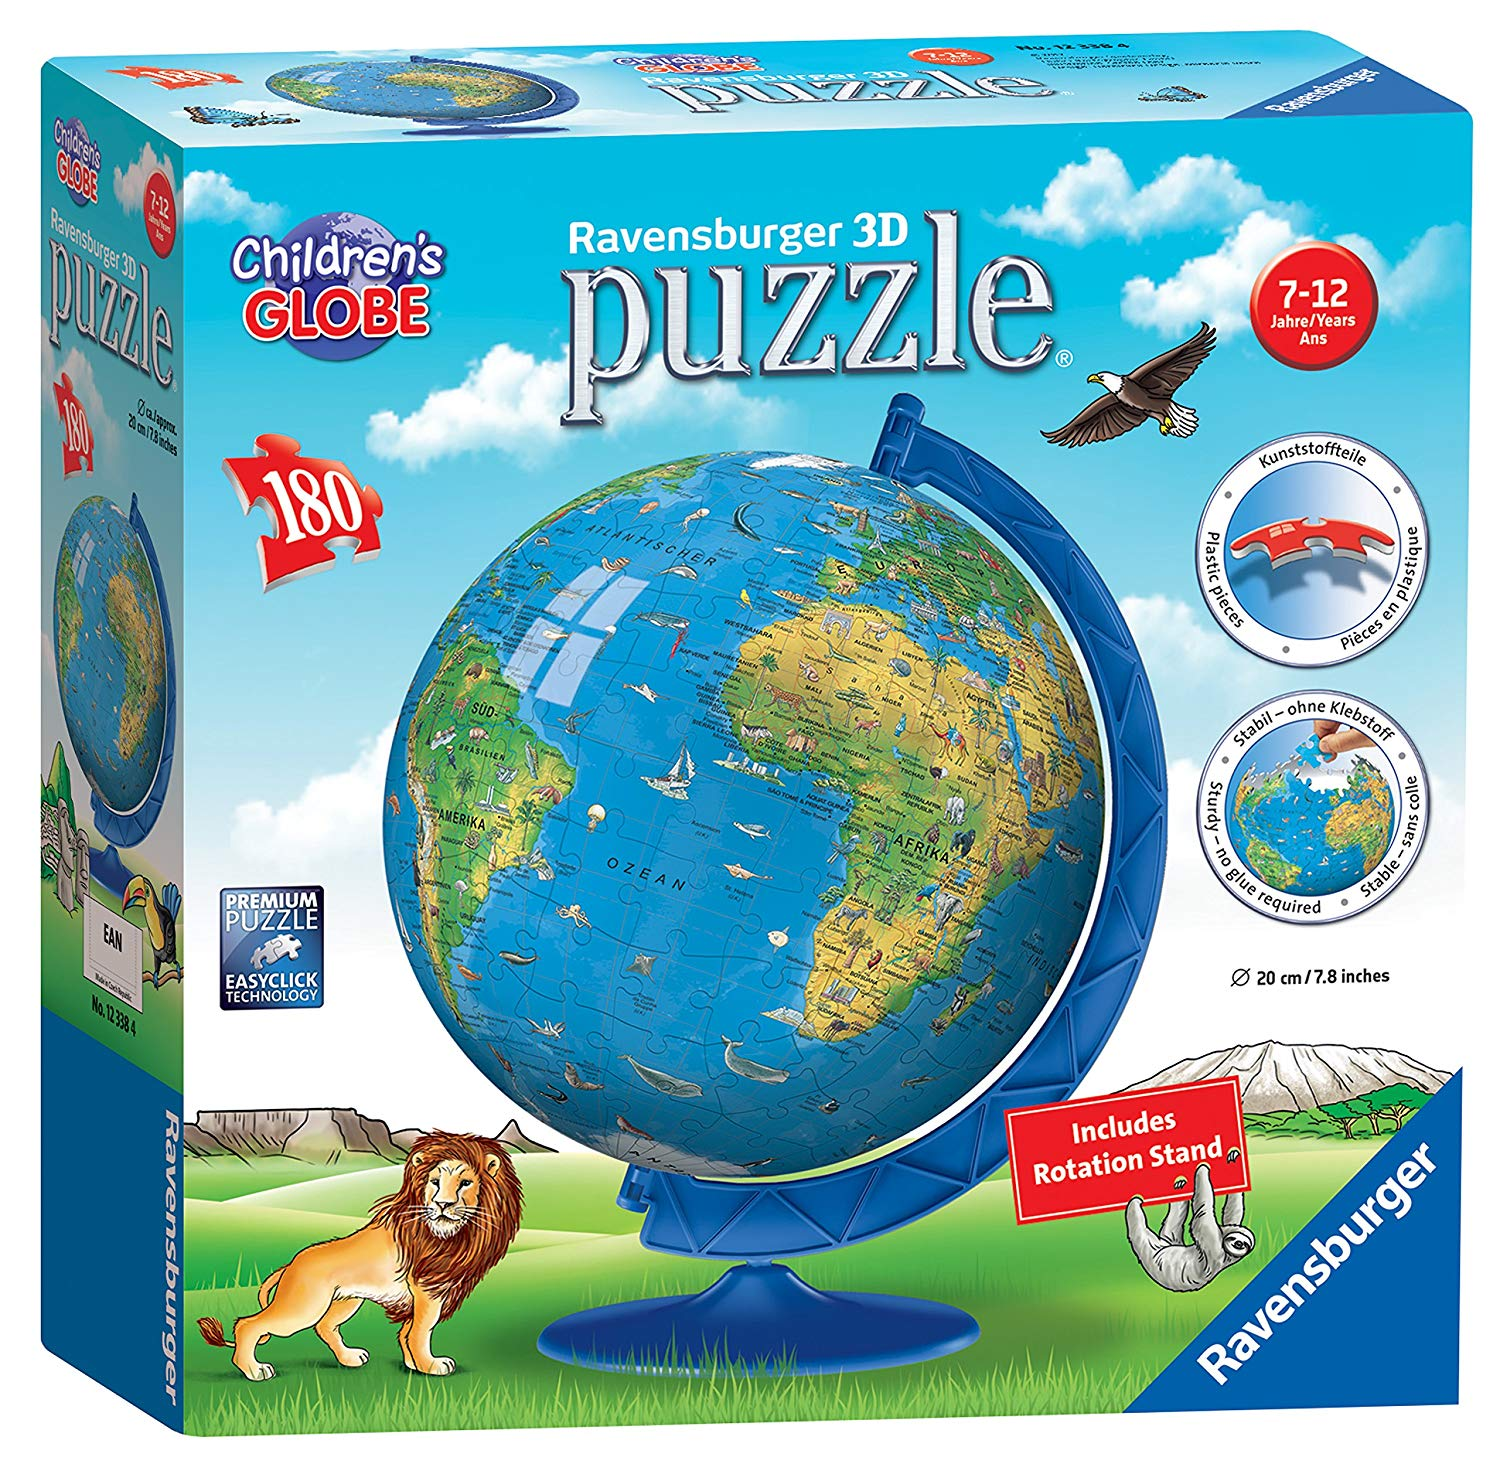 Ravensburger Children's 180 Piece 3D Globe Jigsaw Puzzle